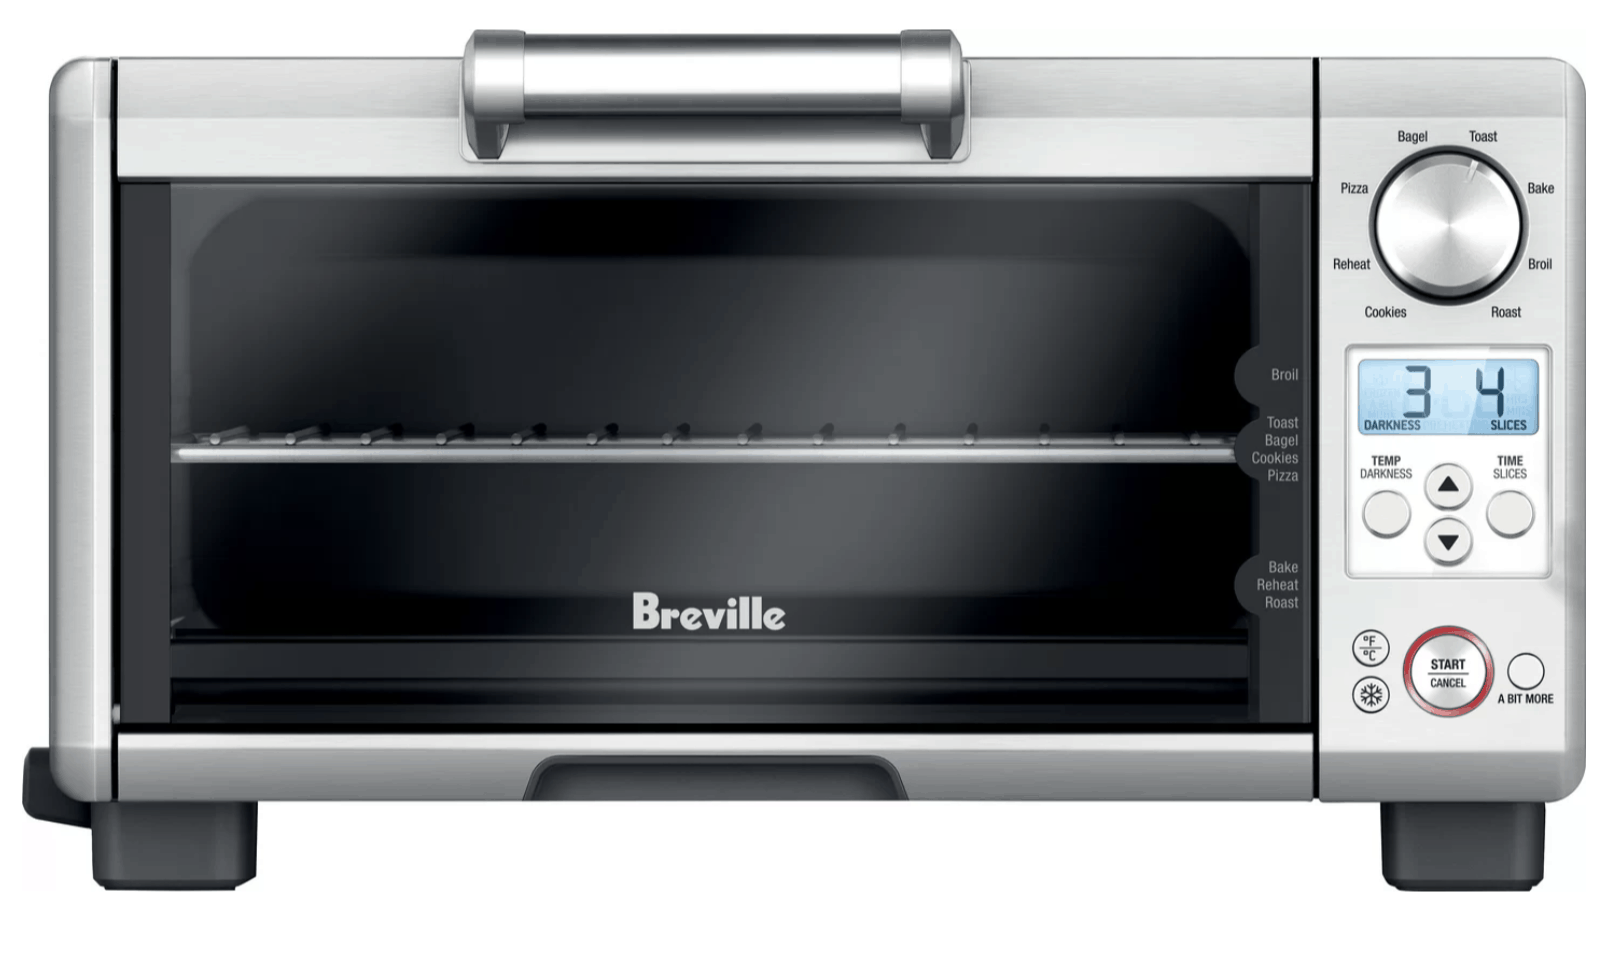 Mini smart toaster oven by Breville